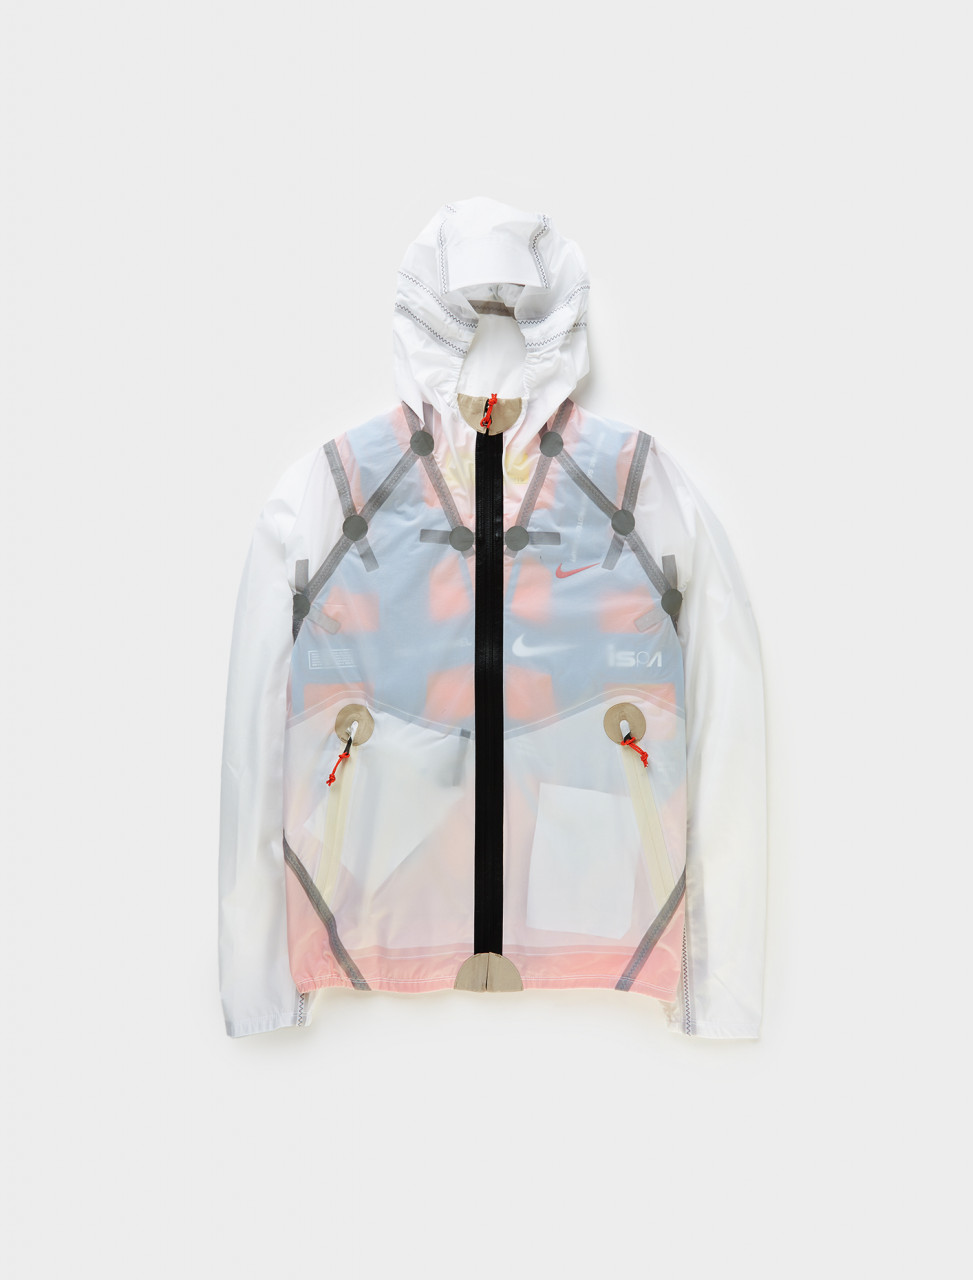 Nike ISPA Weather Resistant 'Inflate' Jacket in White